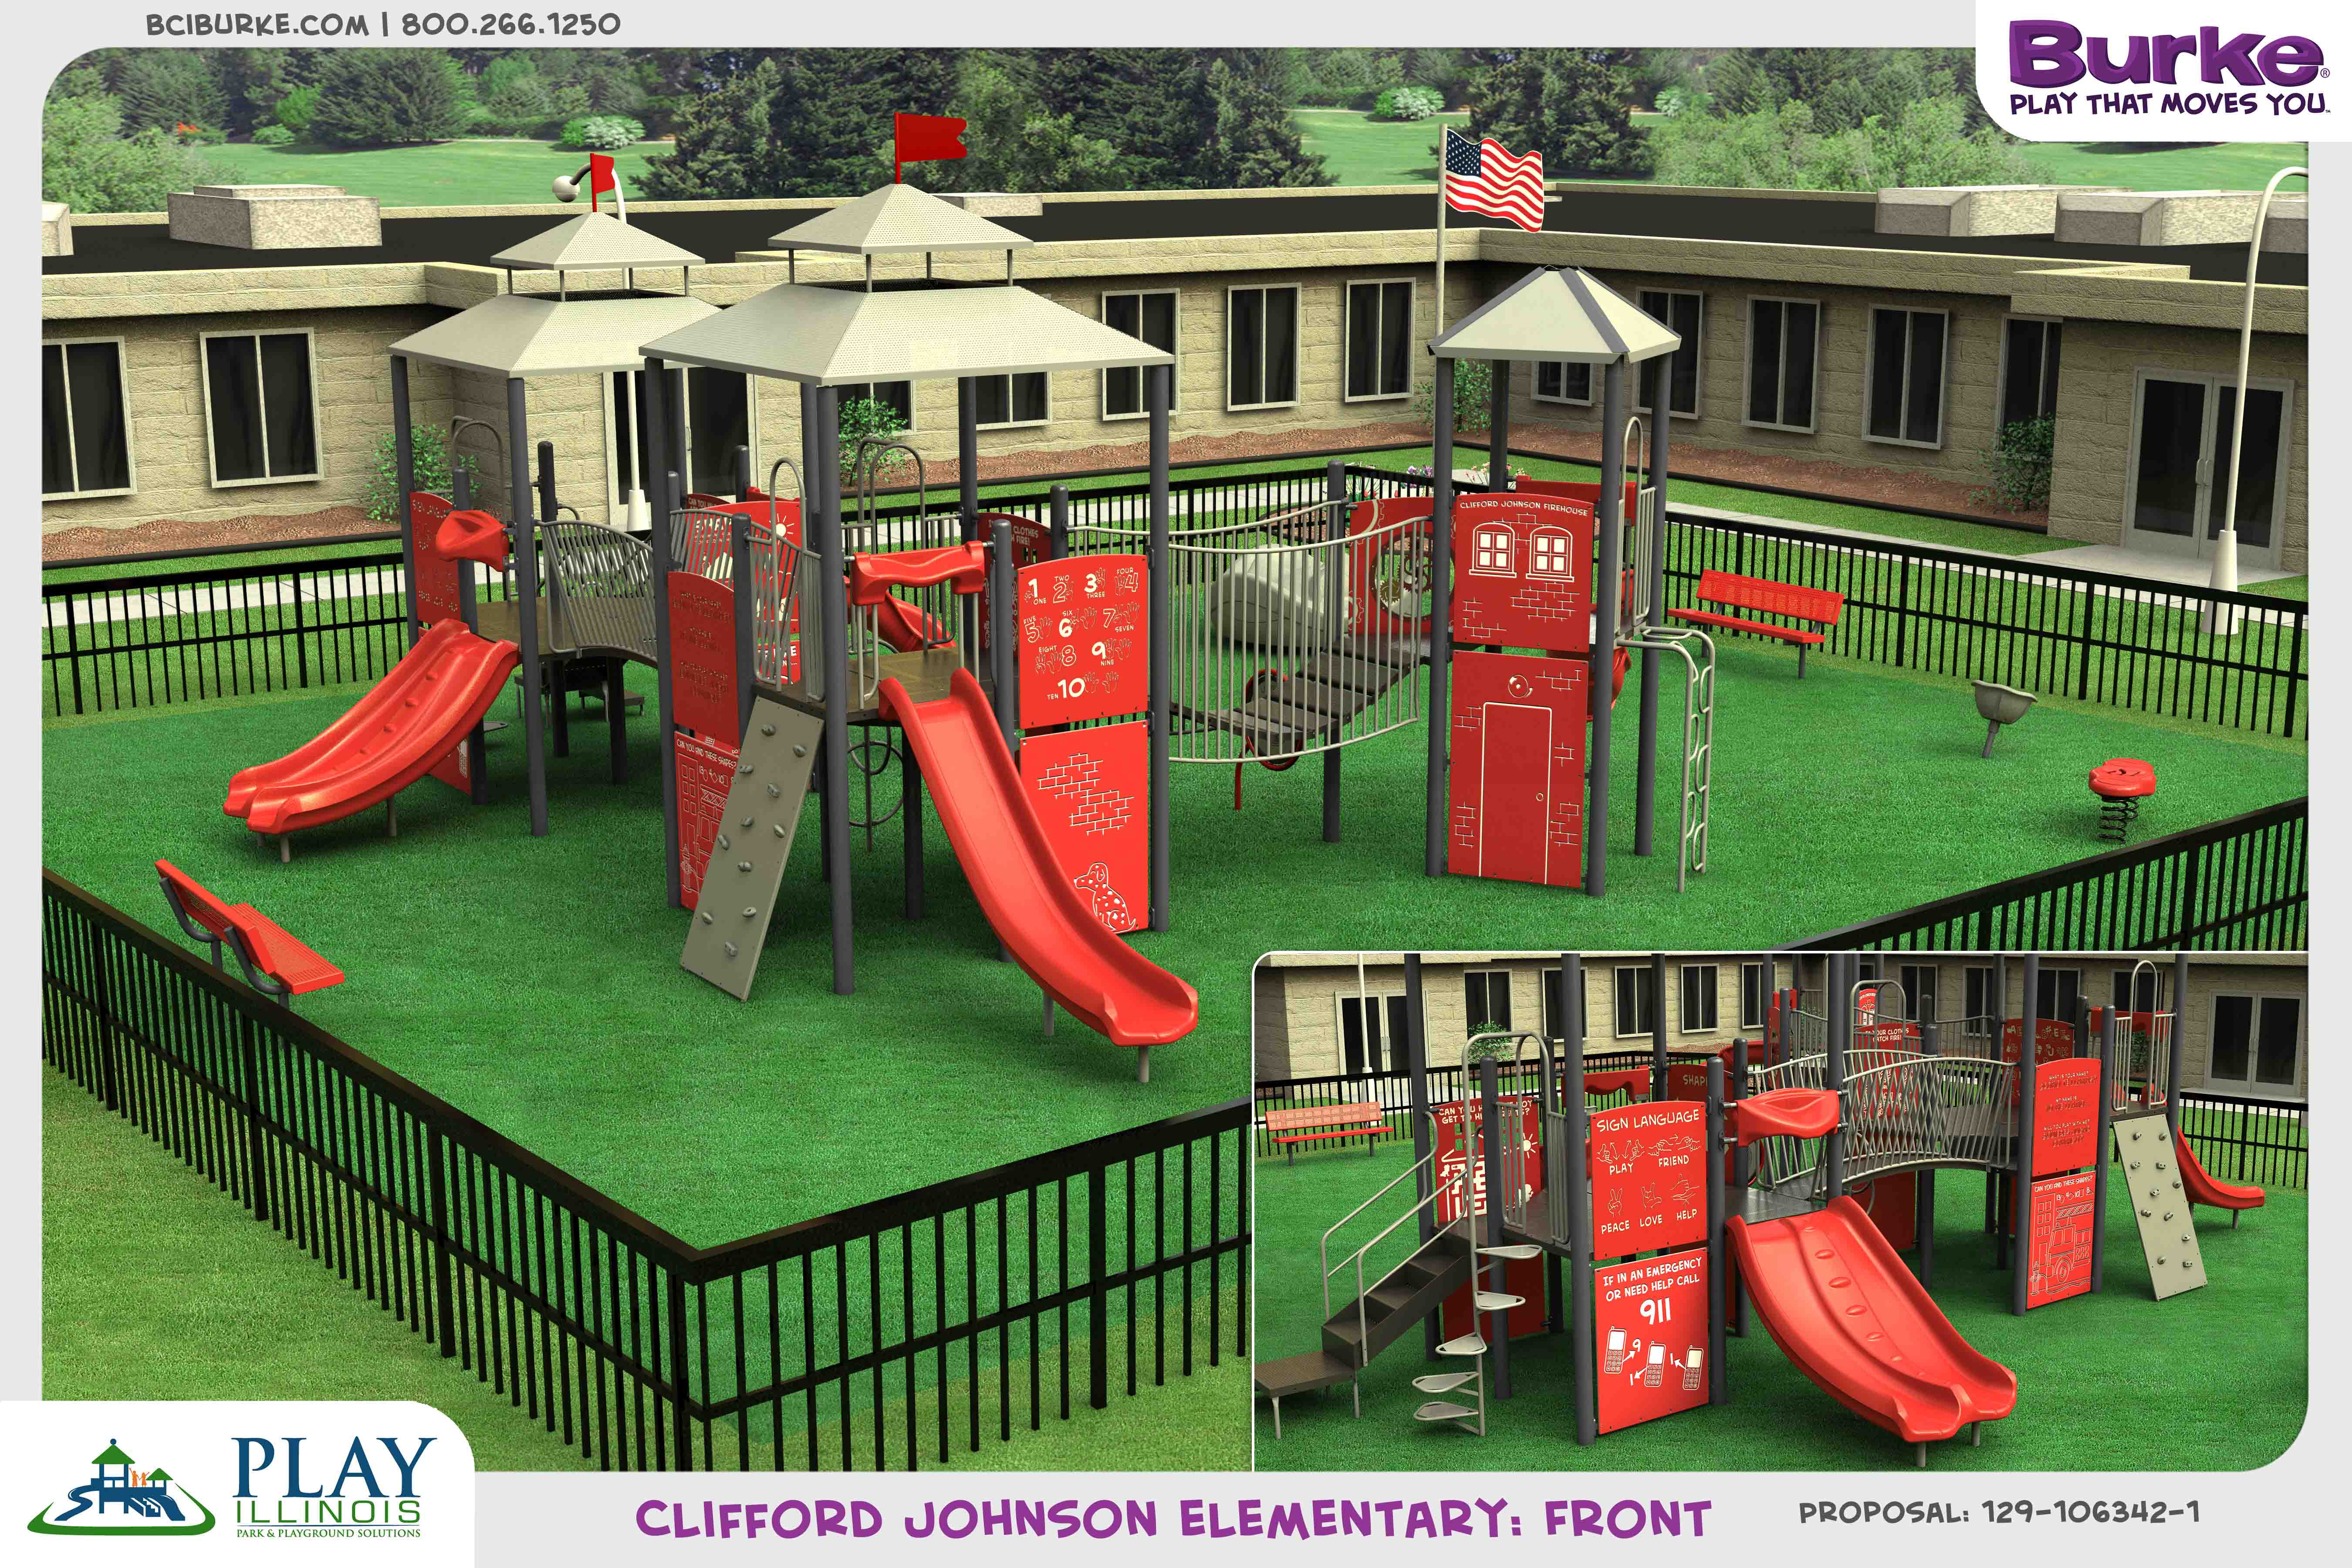 129-106342-1A-copy_MC_CliffordJohnson dream build play experience accessible playgrounds